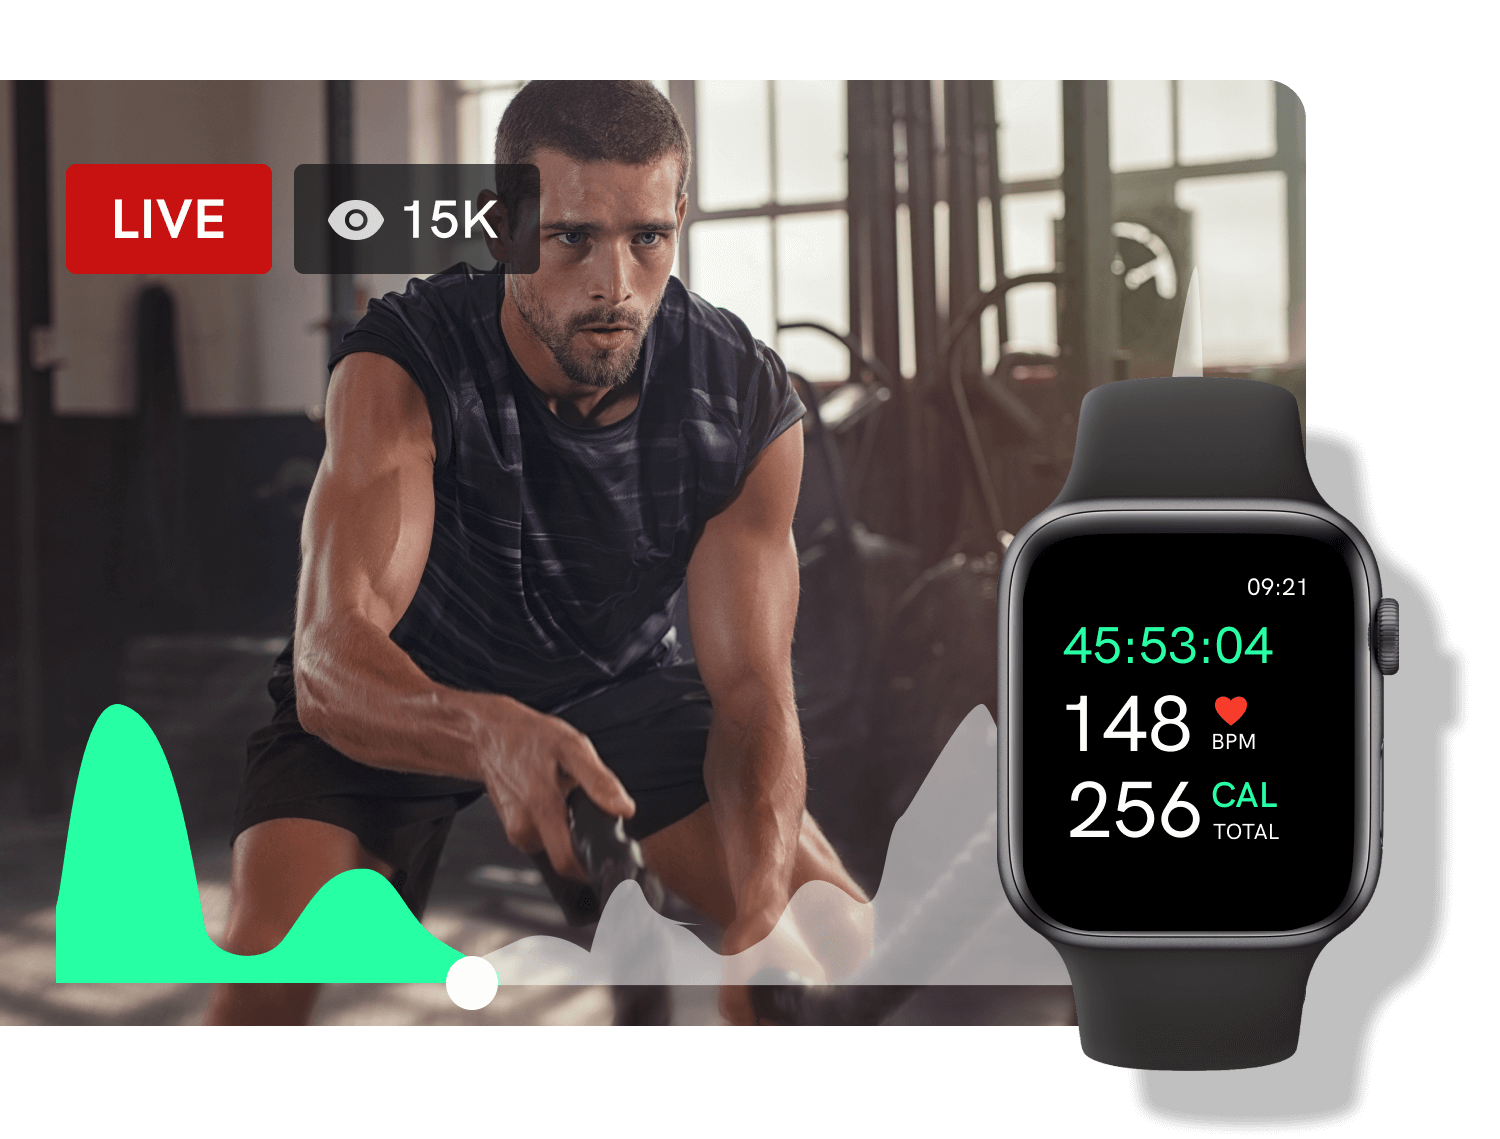 Apple watch companion app for tracking live and on-demand content